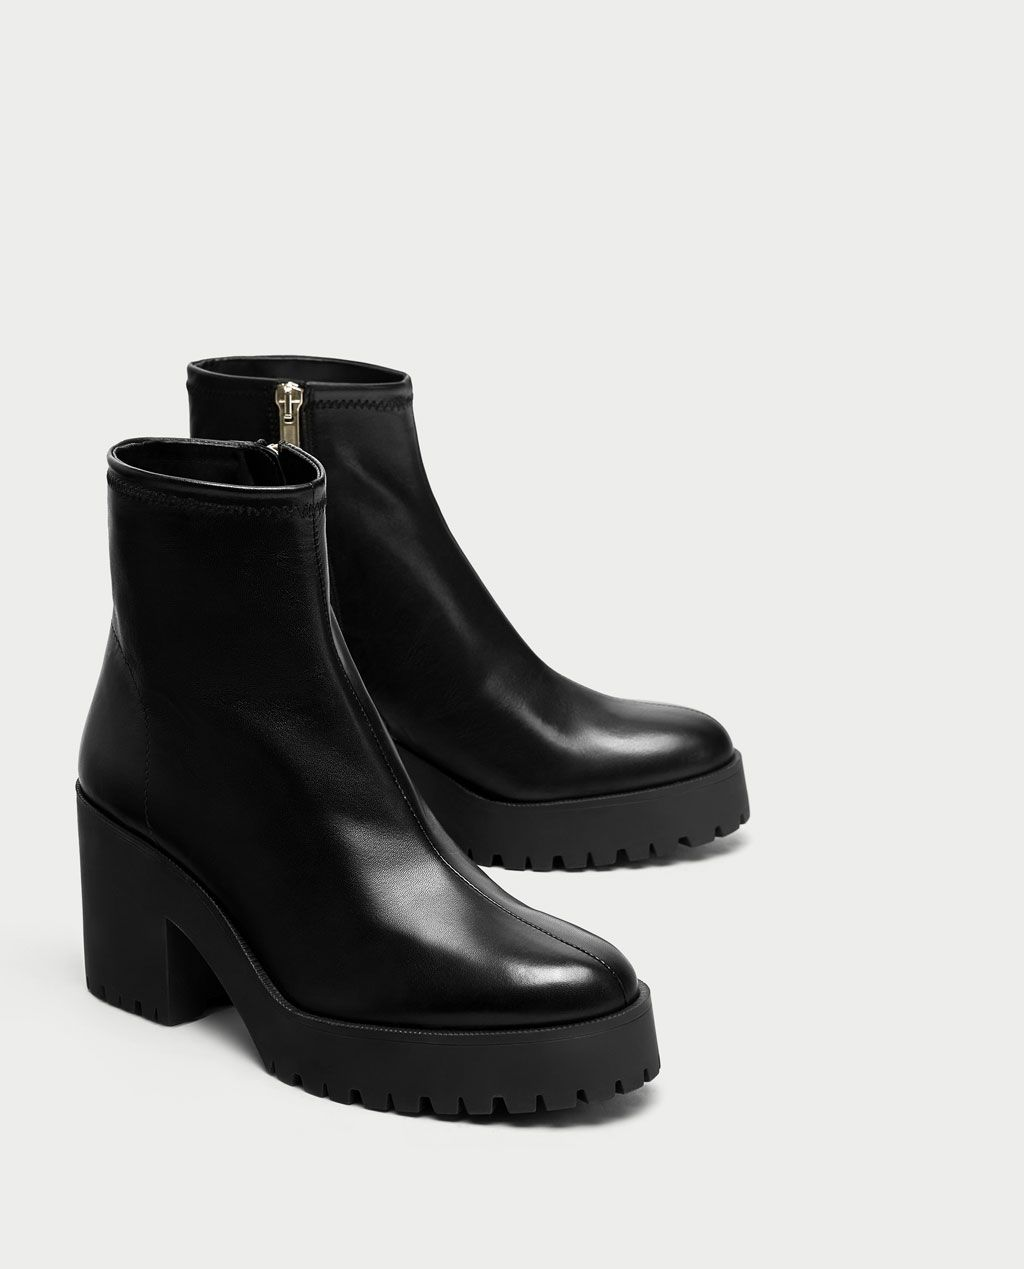 32d55e9f3 Image 1 of LEATHER HIGH HEEL ANKLE BOOTS WITH TRACK SOLE from Zara